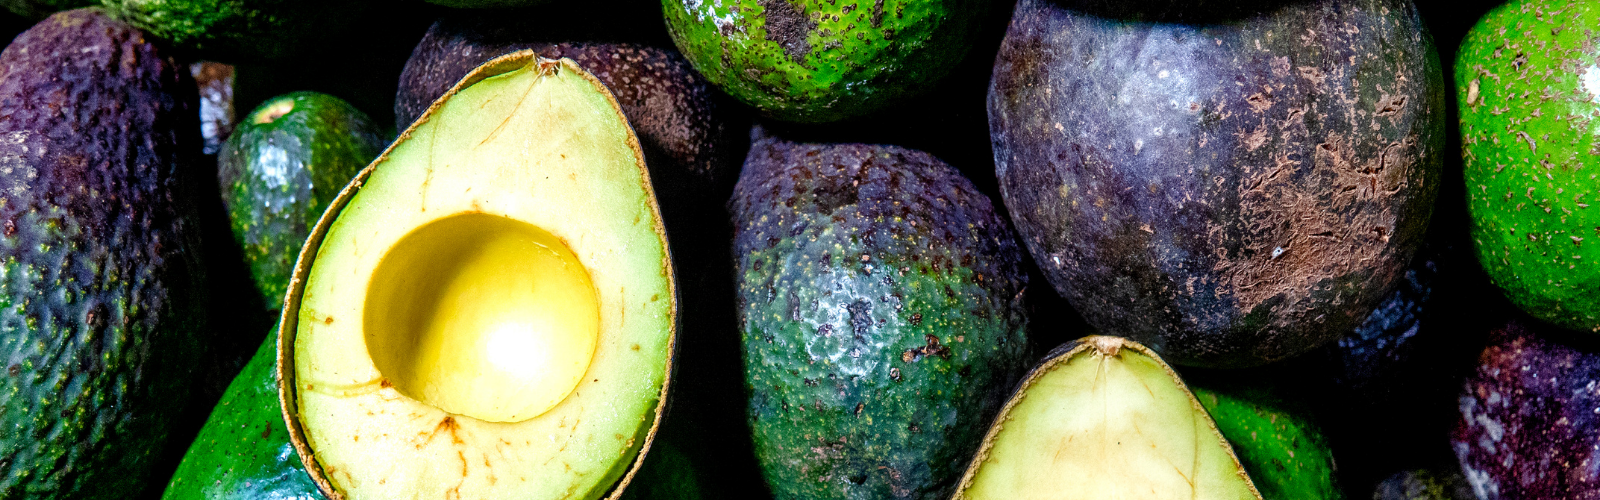 Avocados - Fruits to Increase Sperm Count and Motility